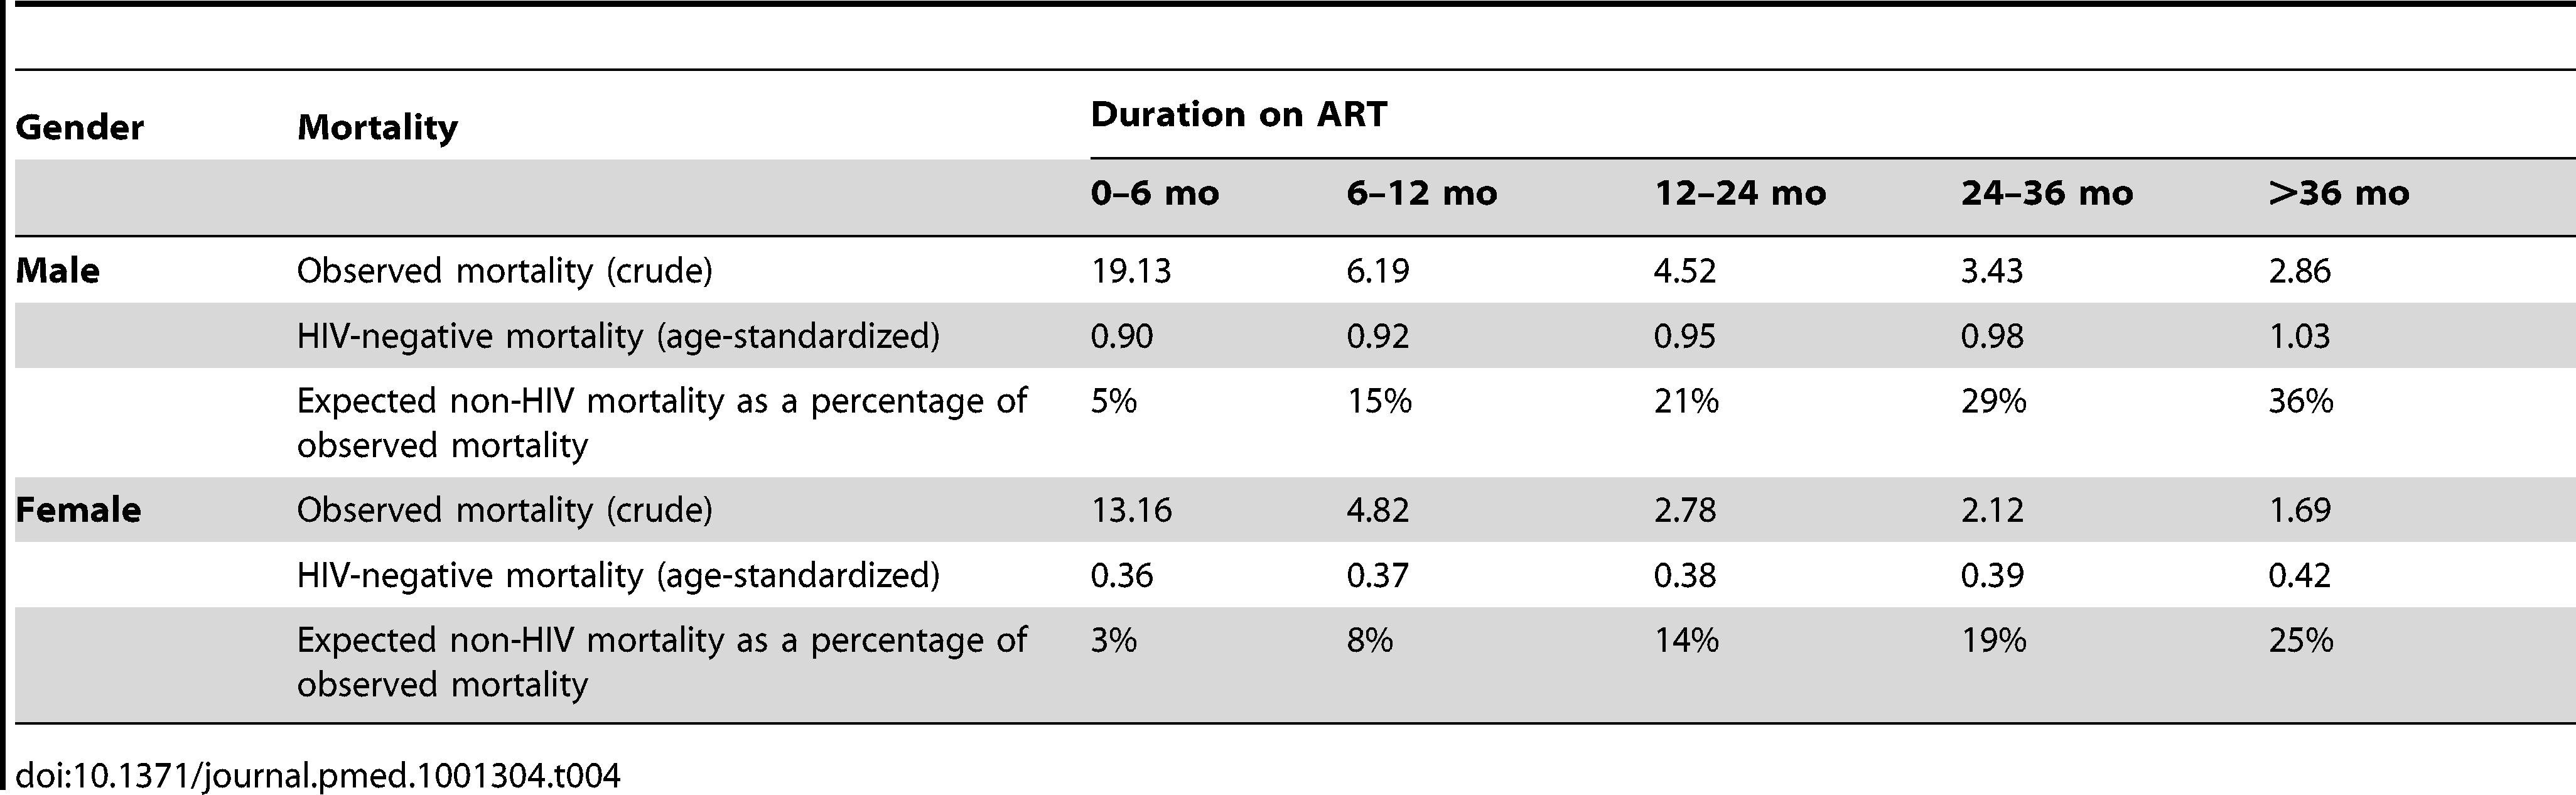 Observed crude mortality<sup>a</sup>, age-standardised HIV-negative mortality<sup>a</sup>, and expected non-HIV mortality as a percentage of observed mortality among men and women, by duration on ART.